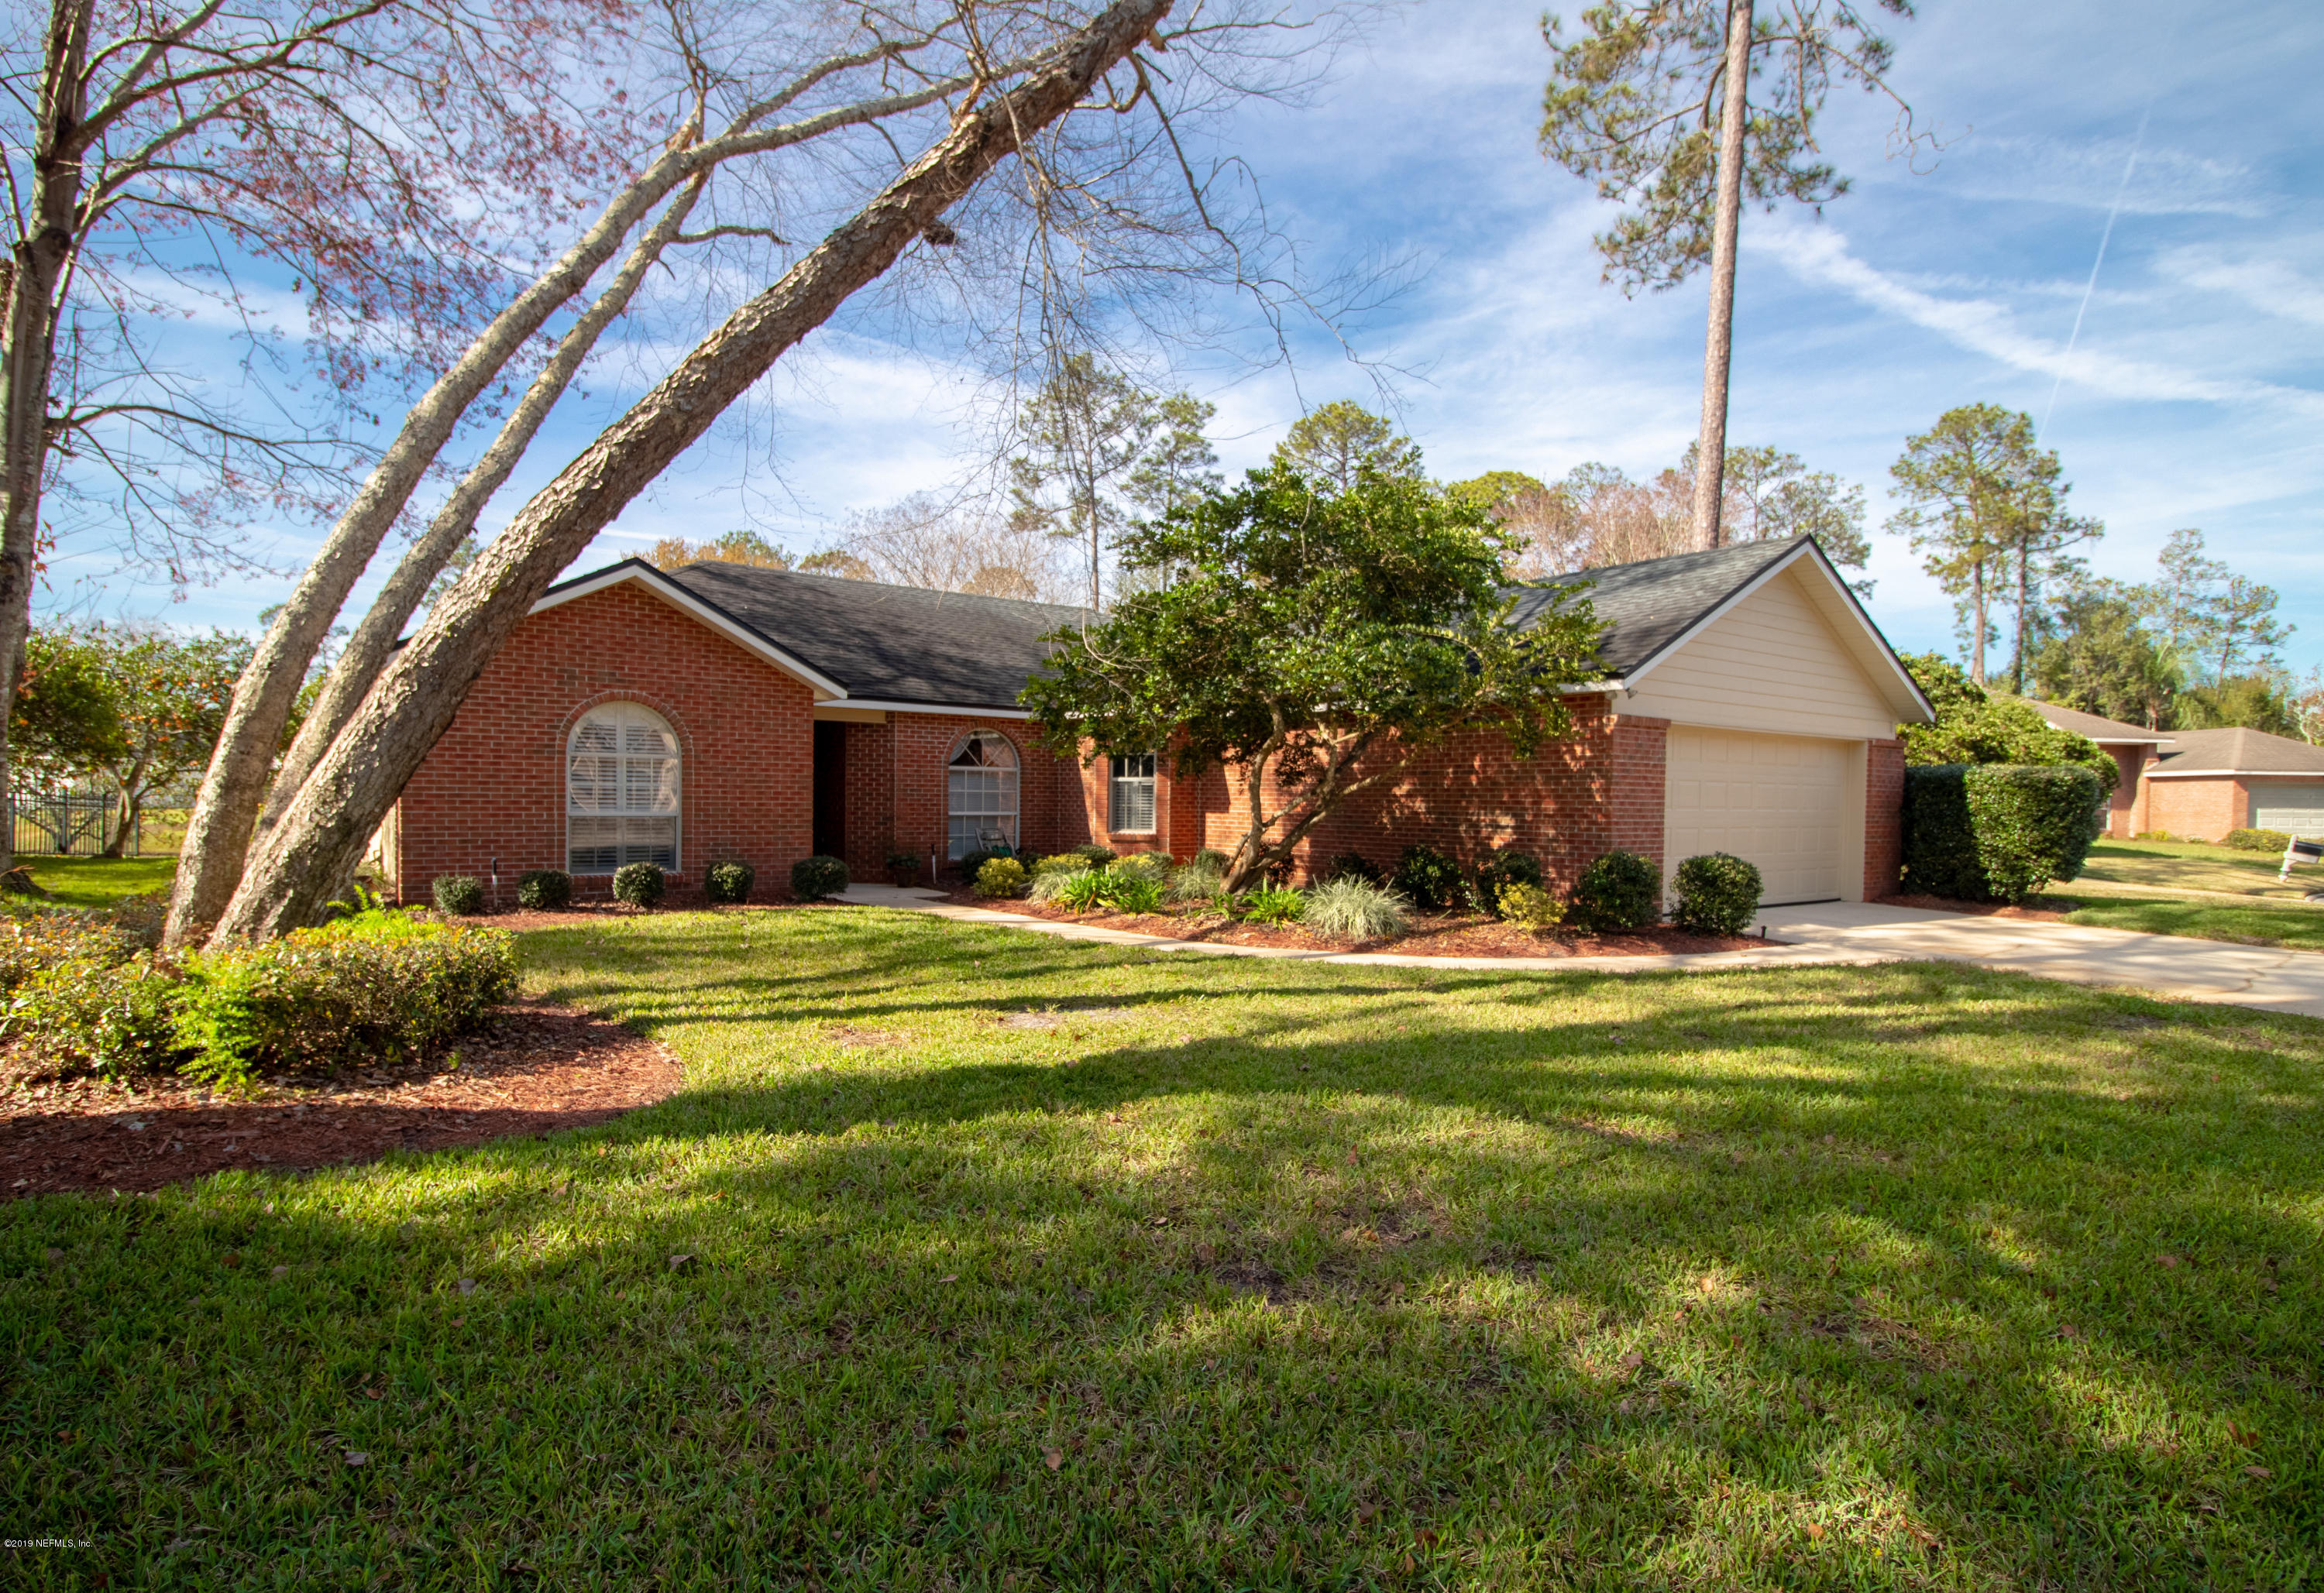 1432 GREEN TURTLE, FLEMING ISLAND, FLORIDA 32003, 3 Bedrooms Bedrooms, ,2 BathroomsBathrooms,Residential - single family,For sale,GREEN TURTLE,975542